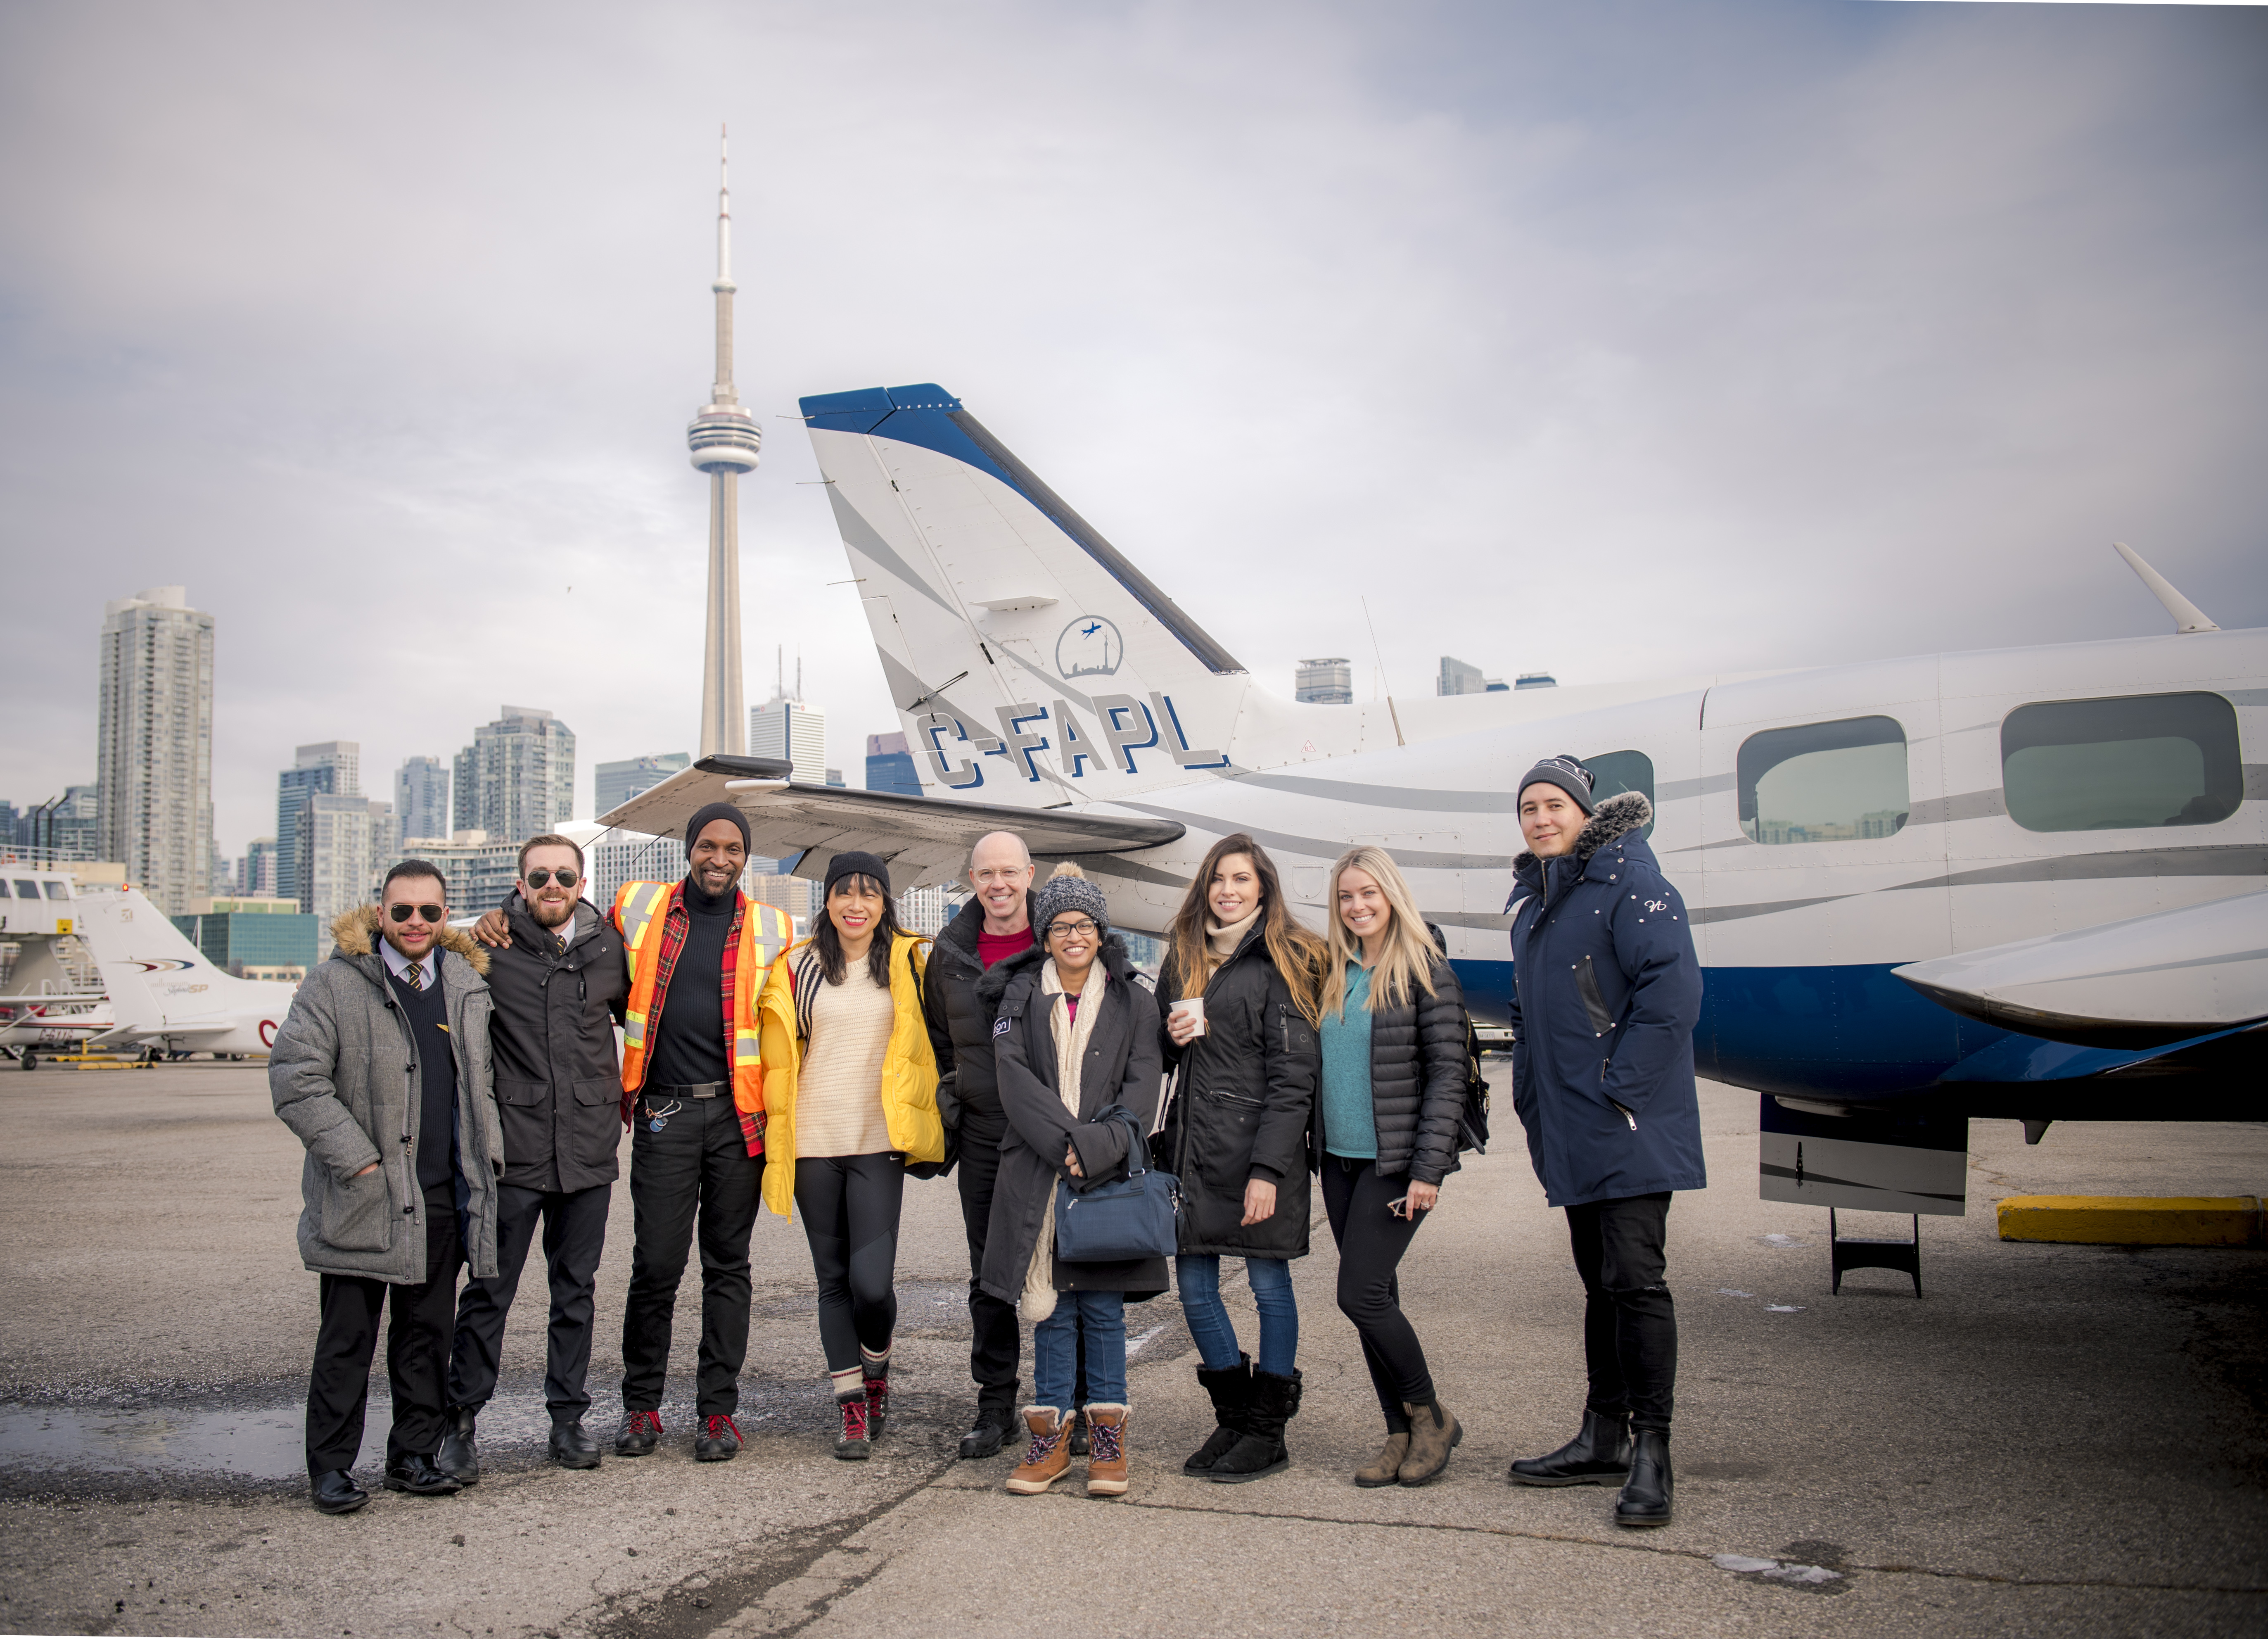 FlyGTA takes you from Billy Bishop Toronto City Airport to Muskoka Airport in just 30 minutes⁠—amazing skyline views included.